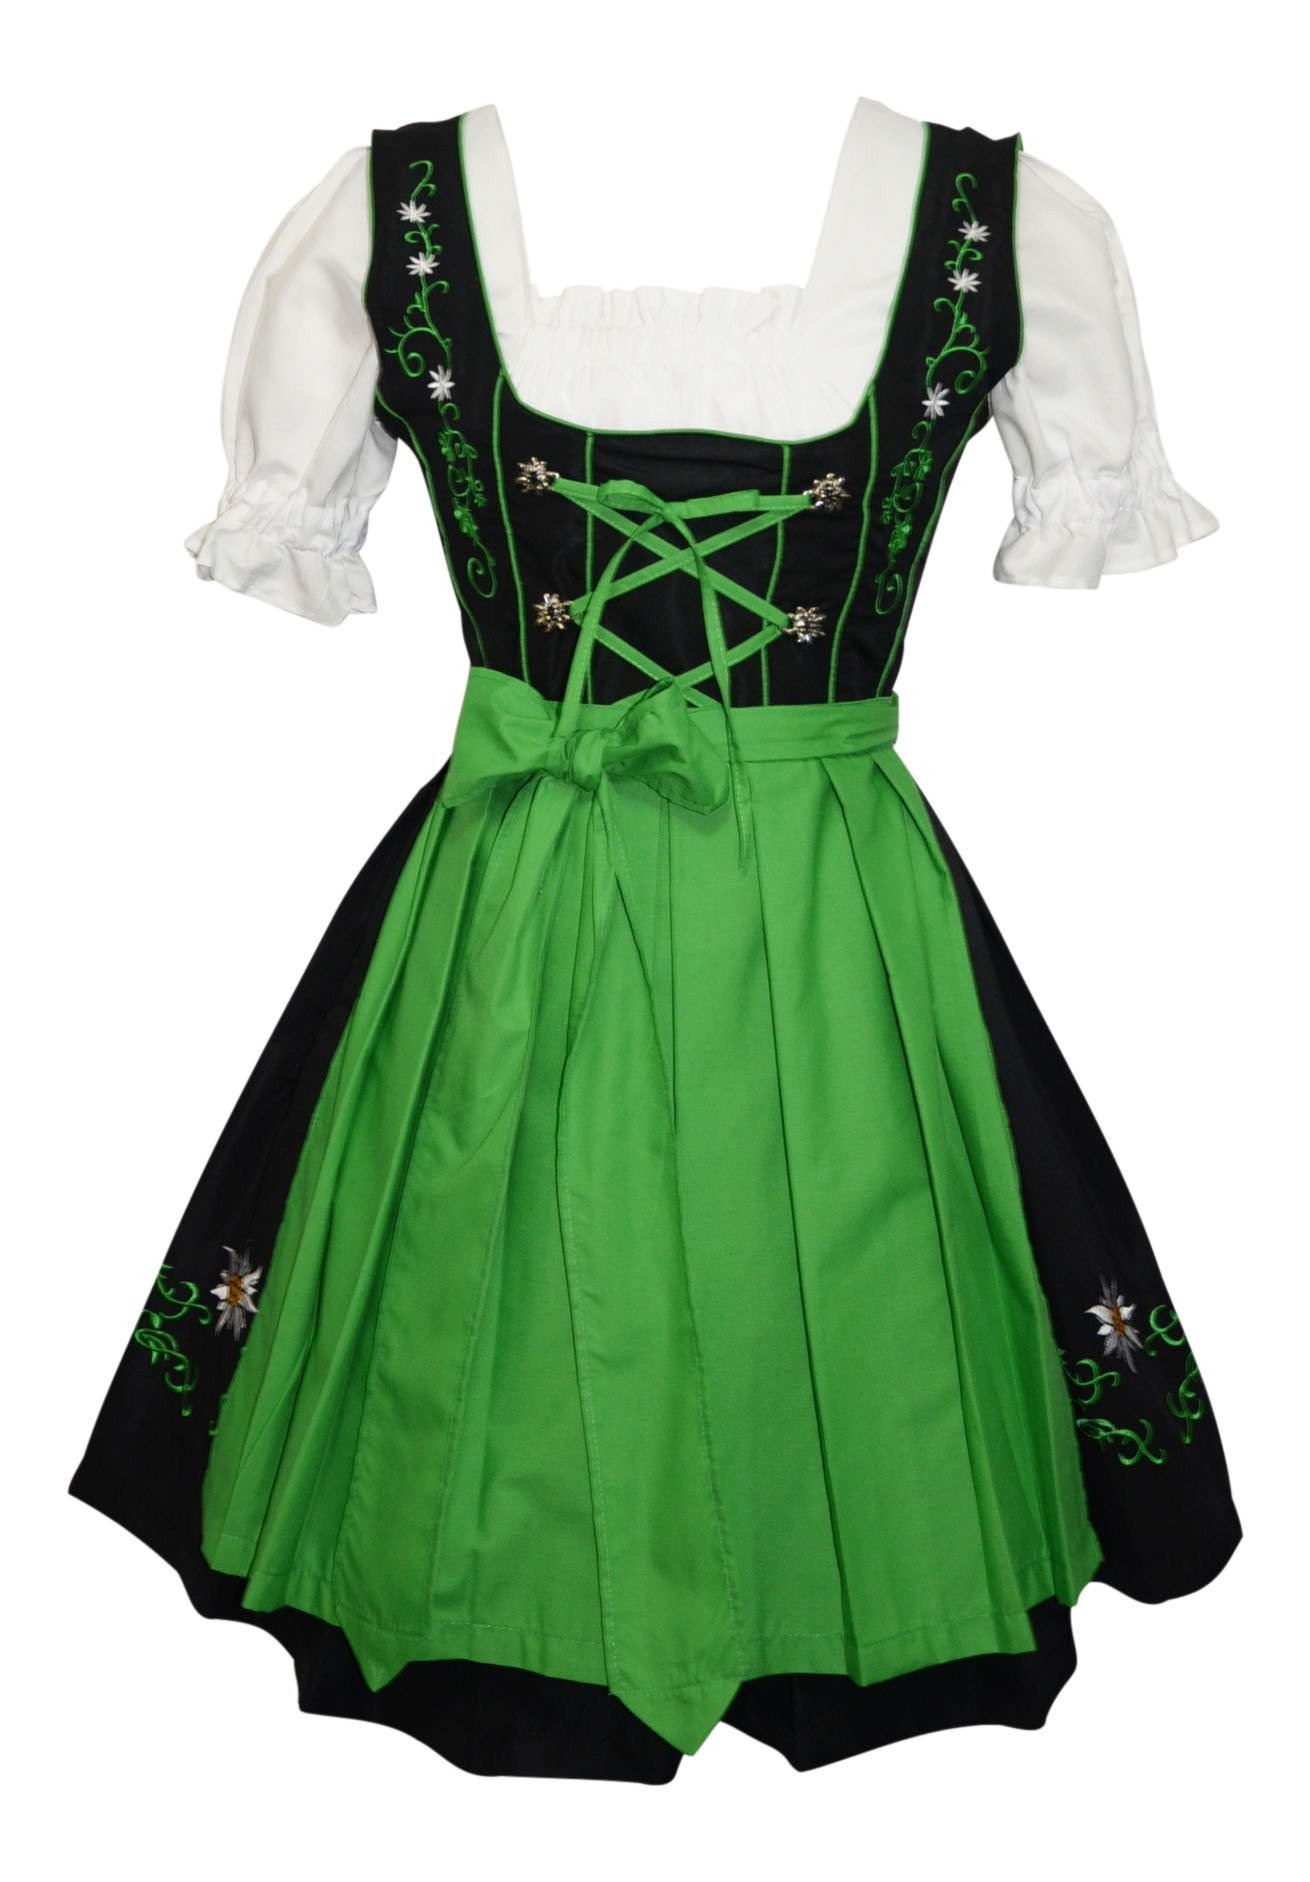 3-piece Short German Party Oktoberfest Dirndl Dress Black & Green (16)